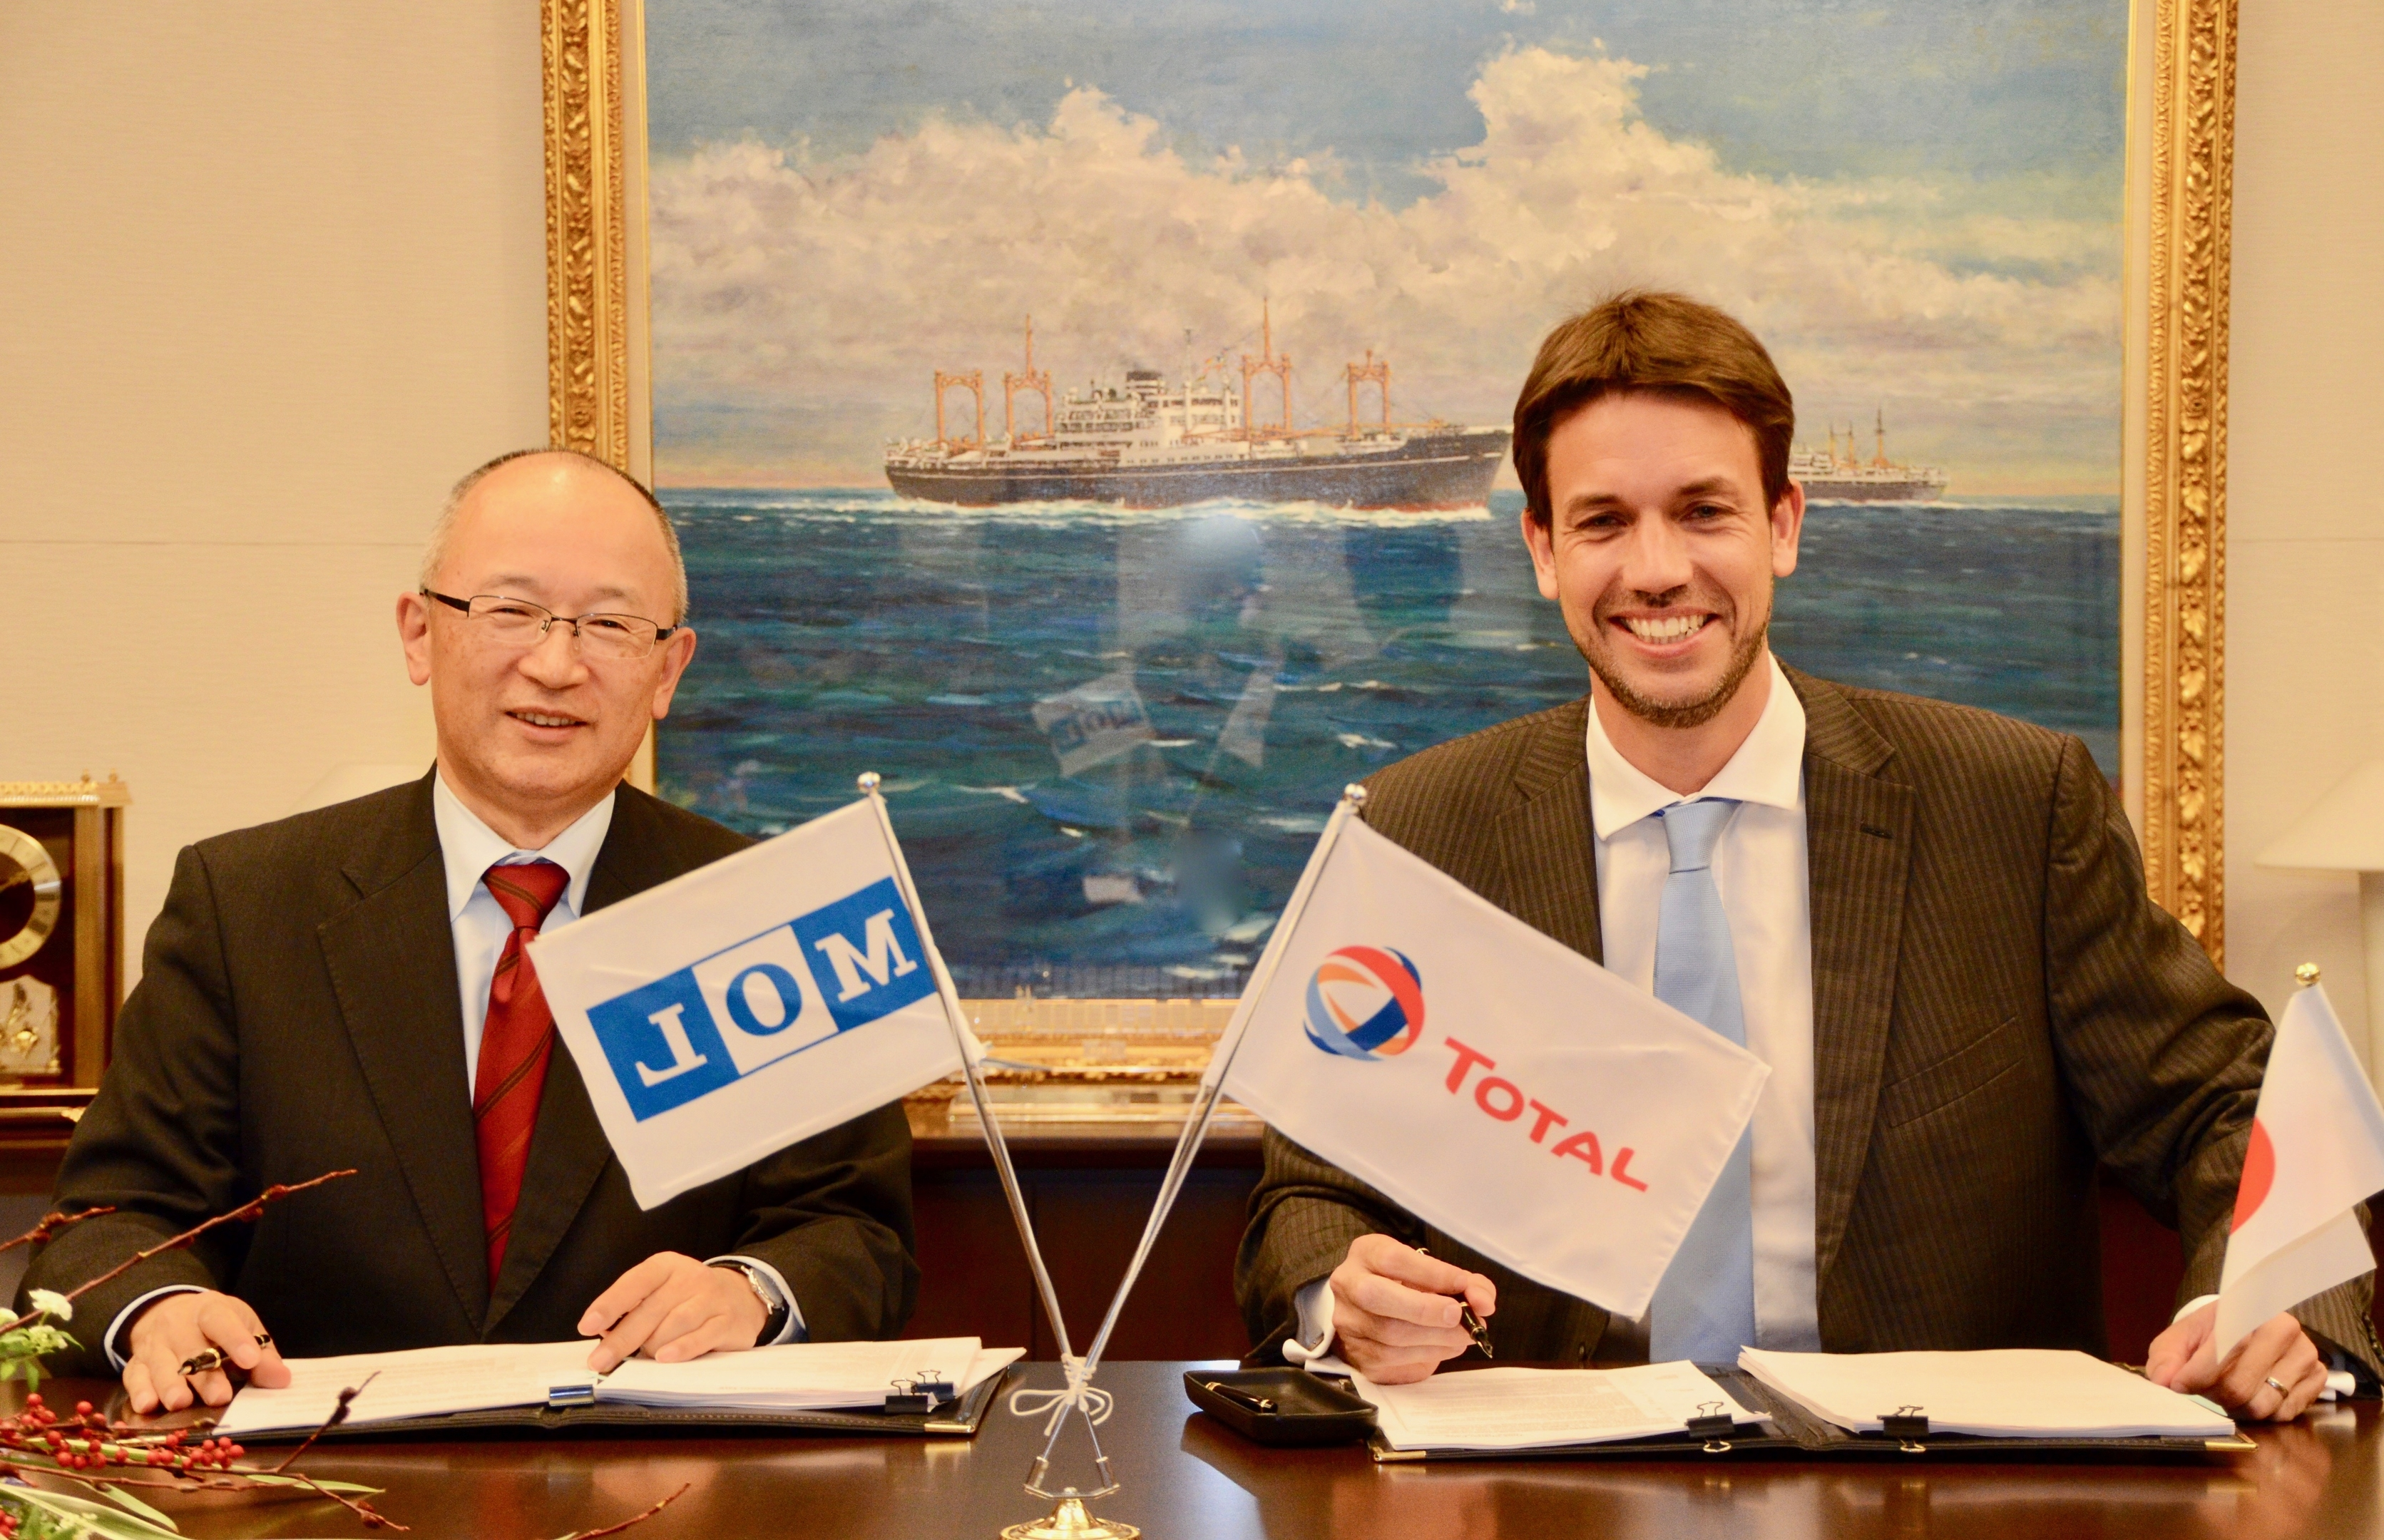 Total Marine Fuels Global Solutions (TMFGS) and Mitsui O.S.K. Lines, Ltd. (MOL) announce deal.